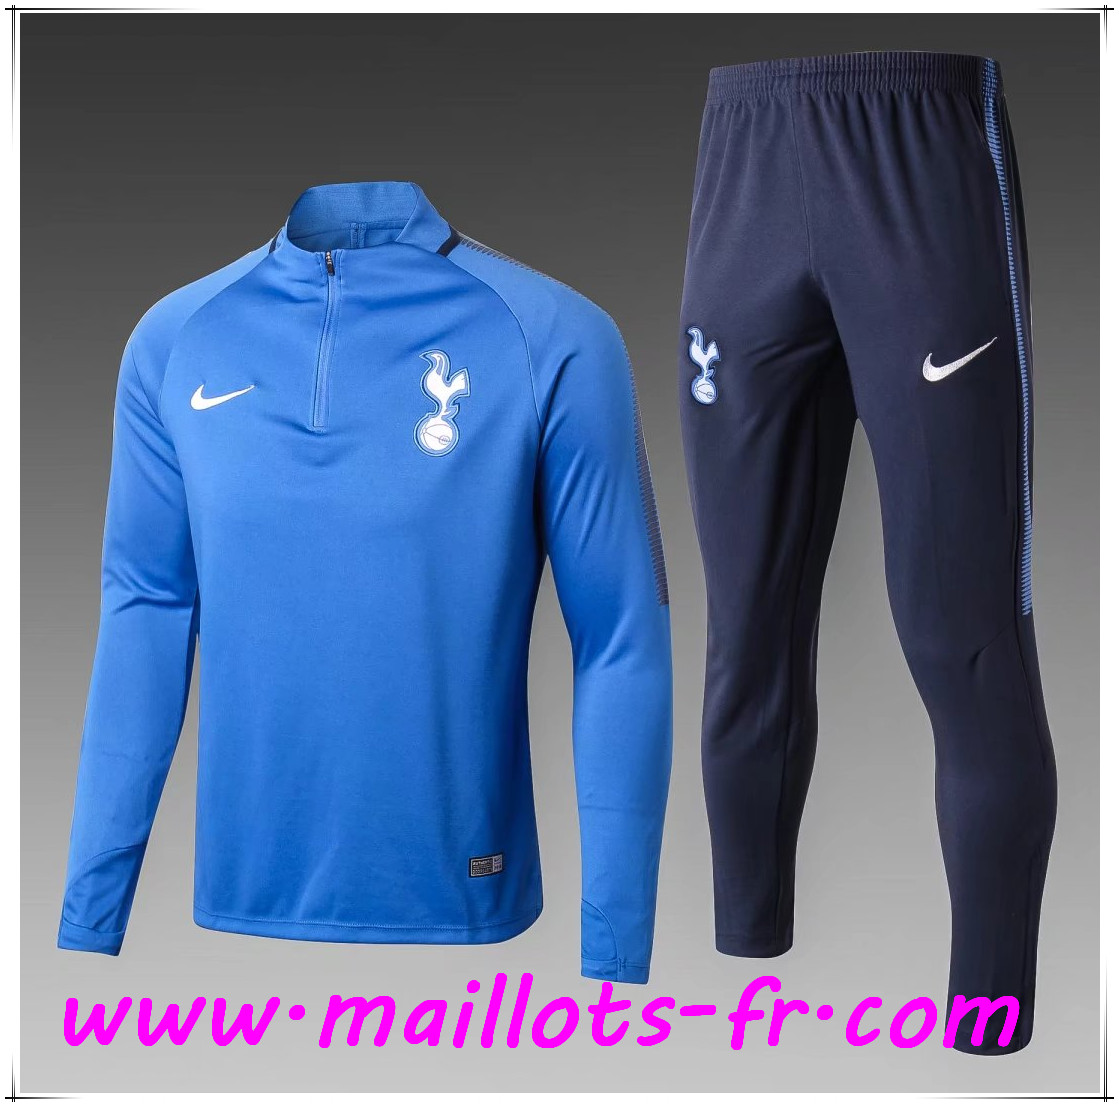 Maillots-fr Thailande Ensemble Survetement Foot Tottenham Hotspur Enfant Bleu 2017/2018